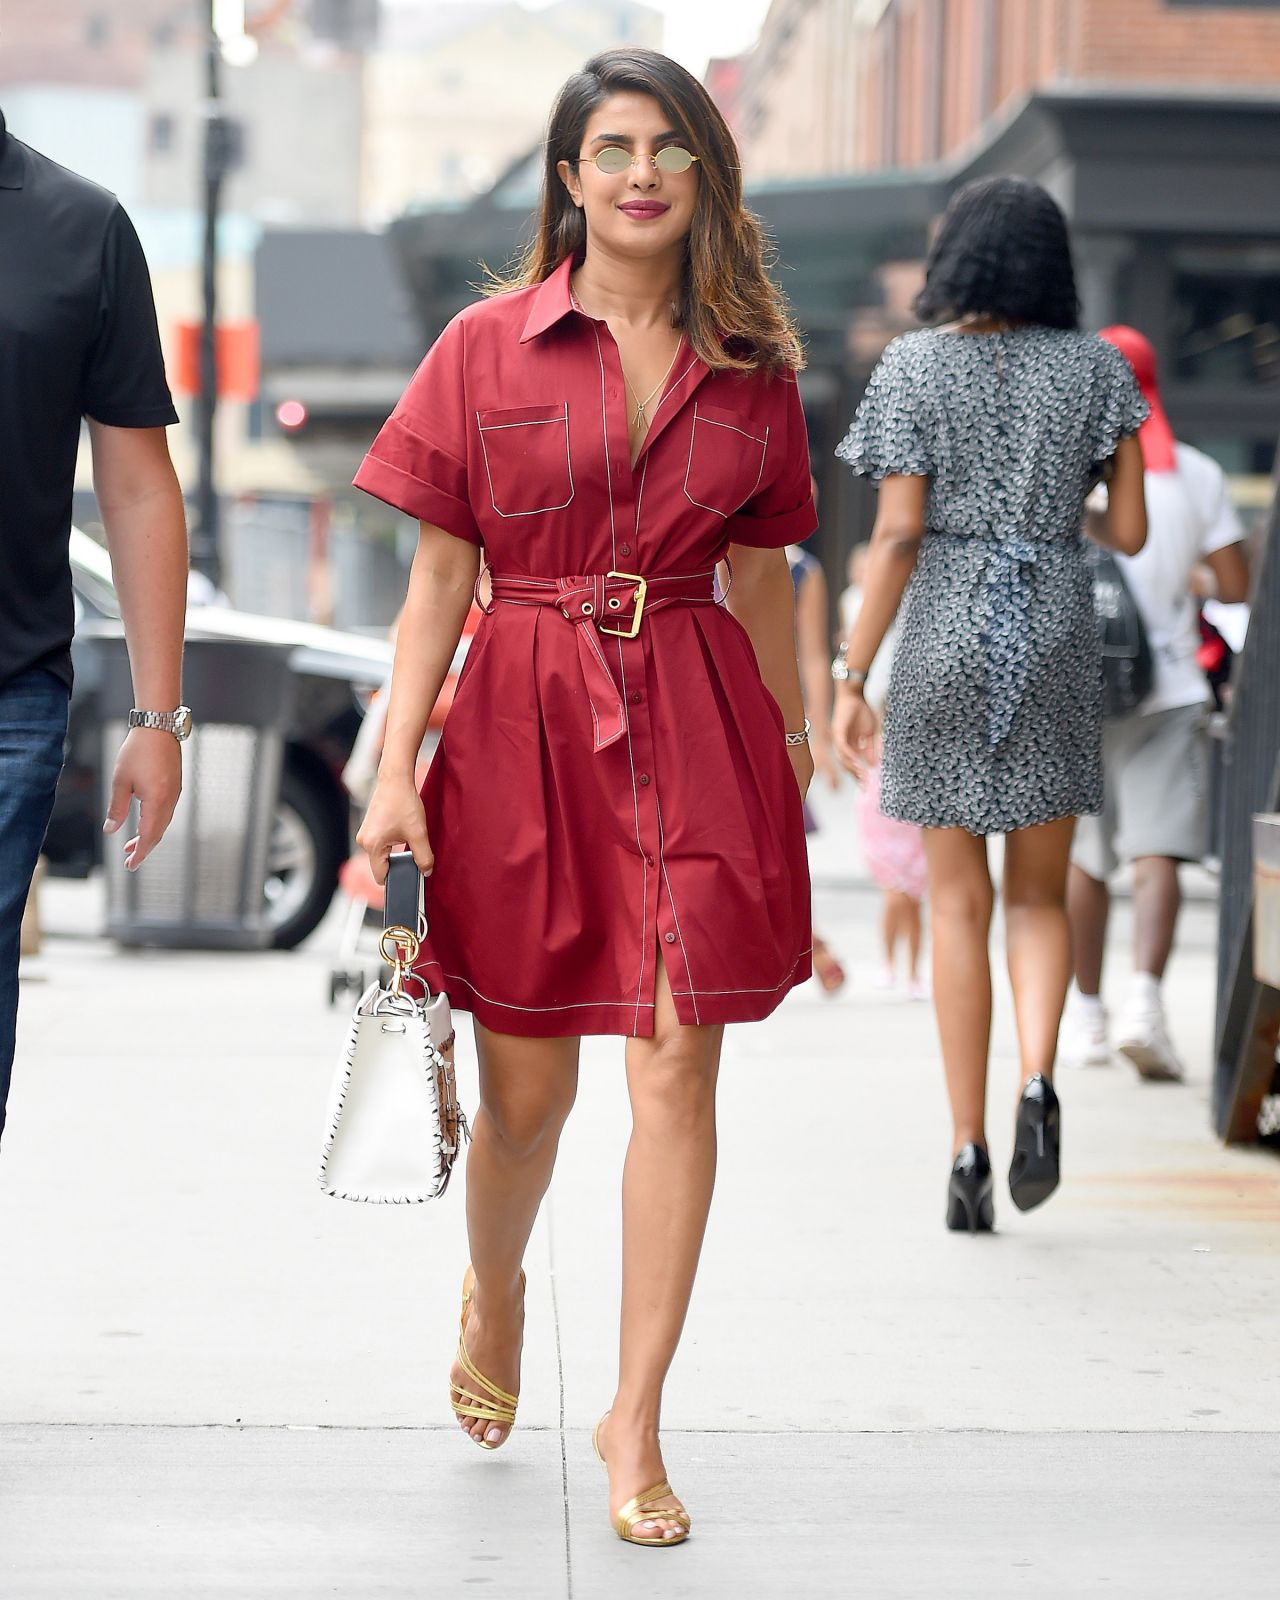 https://celebmafia.com/wp-content/uploads/2018/07/priyanka-chopra-in-a-red-belted-shirt-dress-new-york-city-07-03-2018-14.jpg